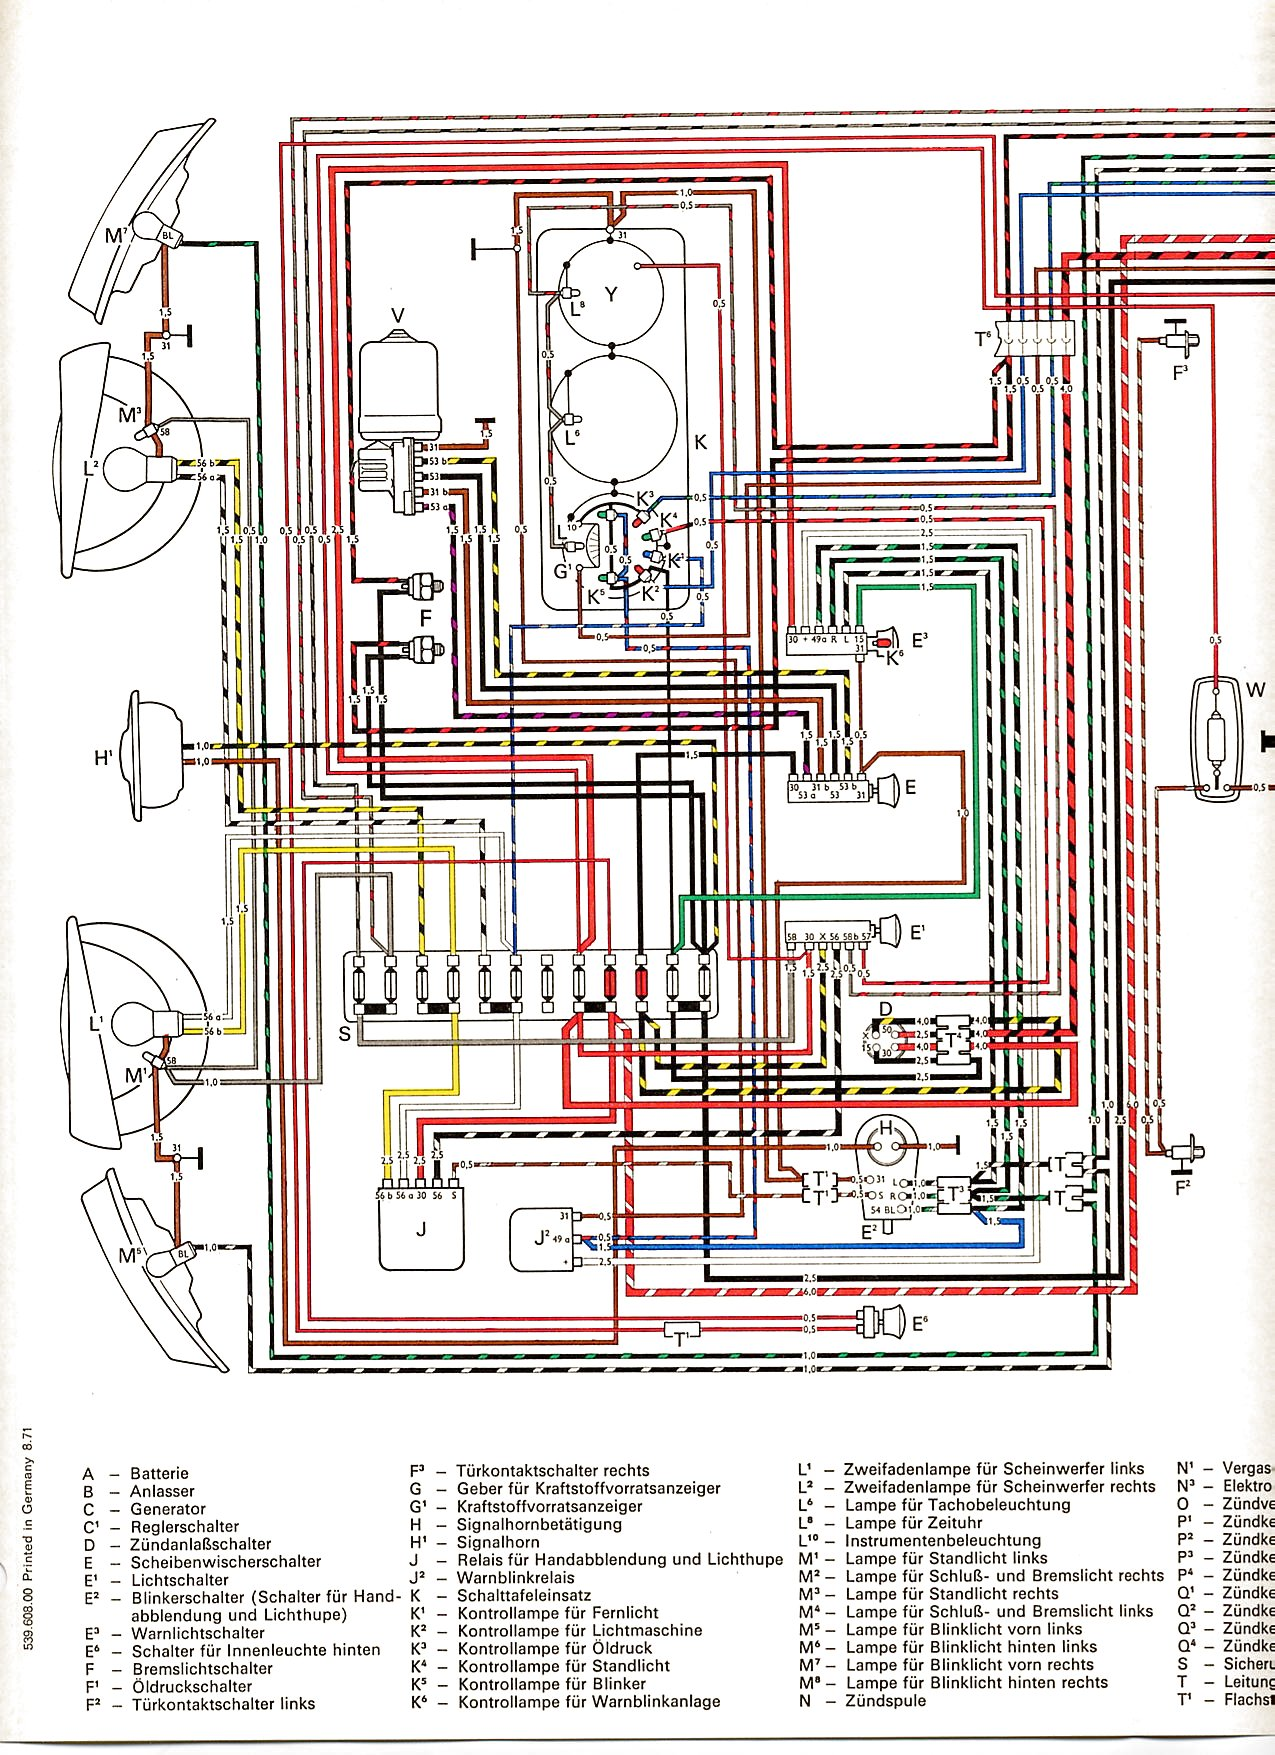 1968 Vw Beetle Engine Diagram Content Resource Of Wiring 72 Vintagebus Com Bus And Other Diagrams 1970 1972